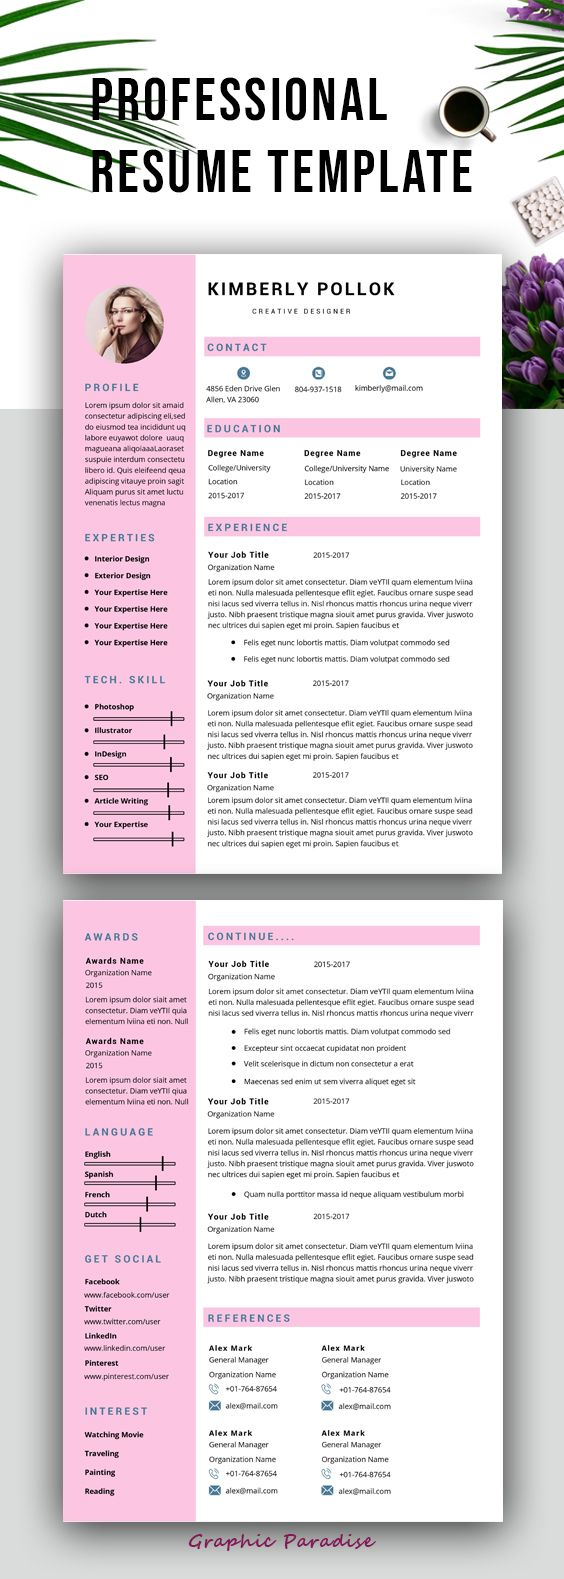 Resume template, Professional resume template instant download, resume template with cover letter, 3 page resume template, word resume #resume #resumetemplate #cv #cvtemplate